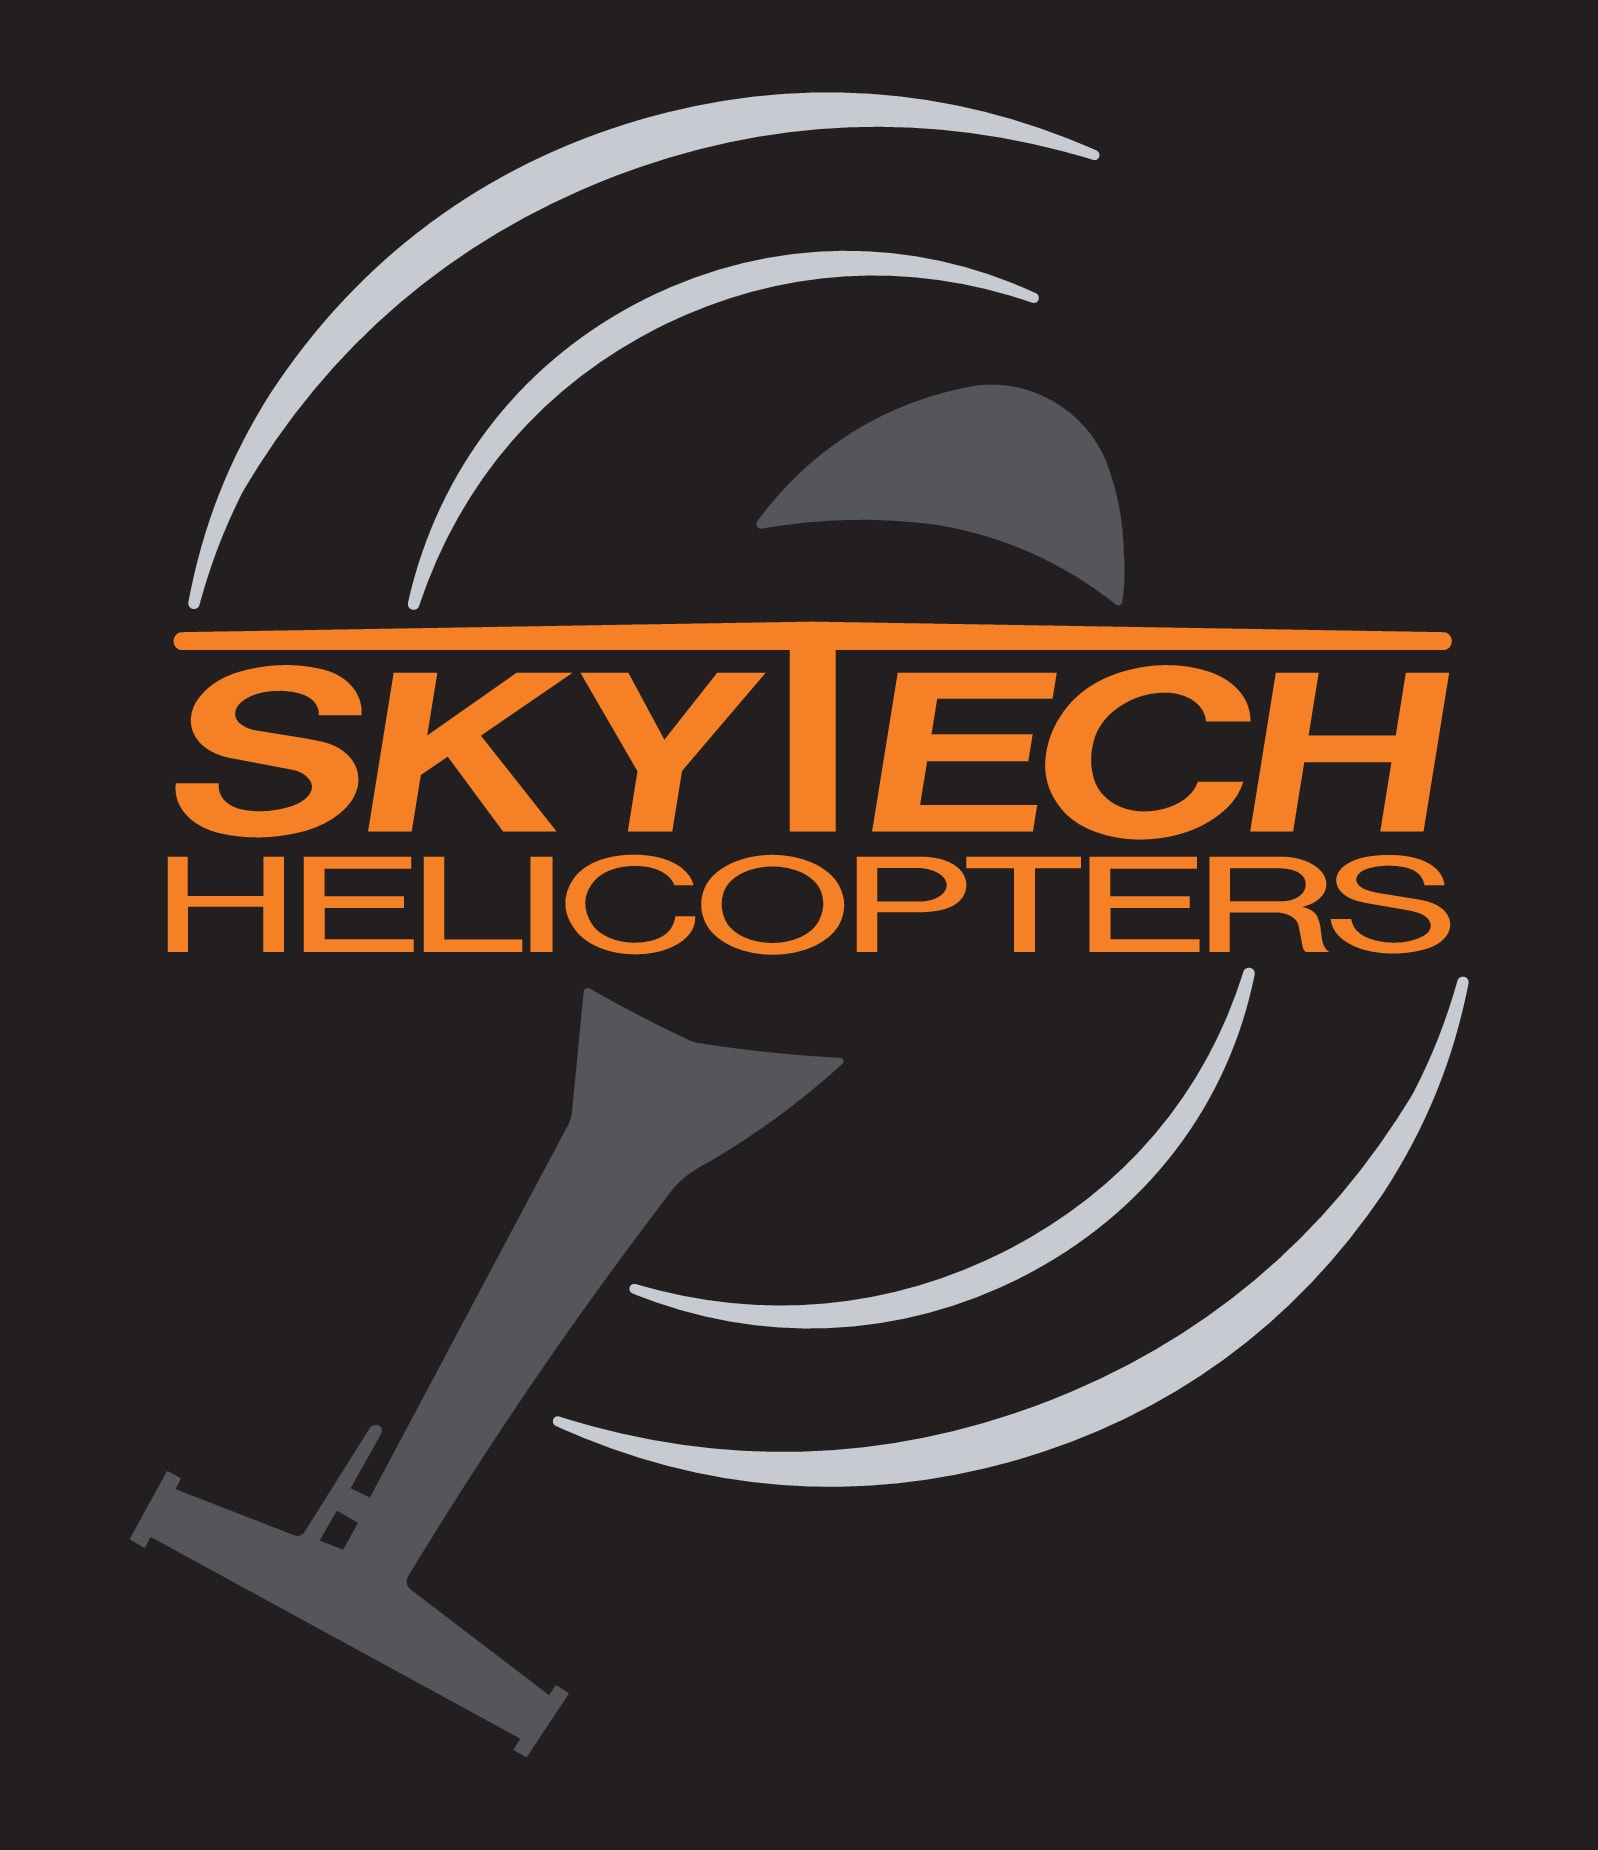 Skytech Helicopters